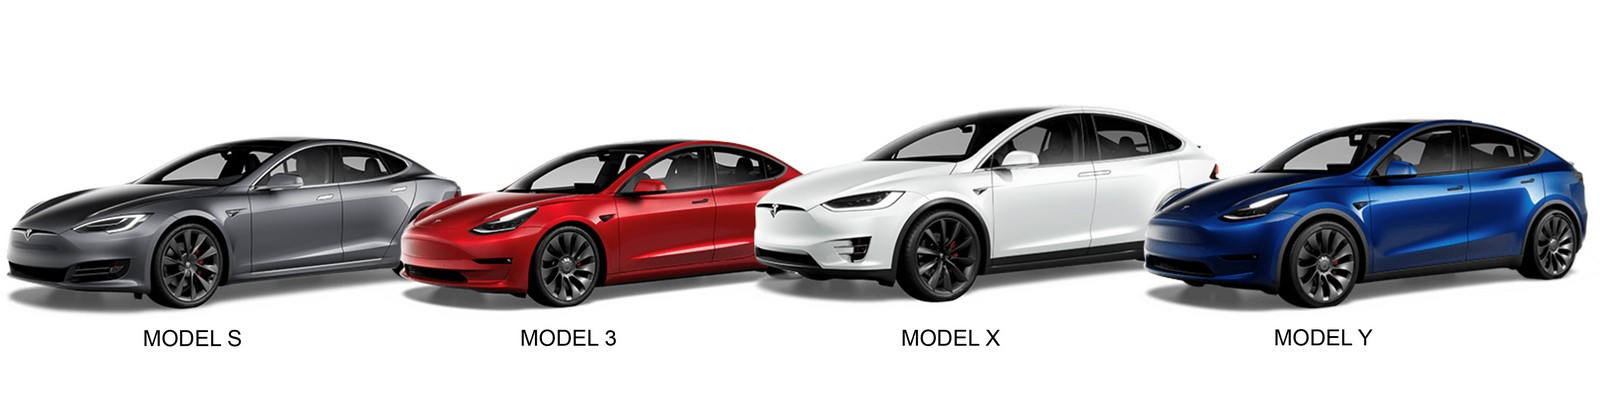 What are Tesla Trunks? - Sheet2